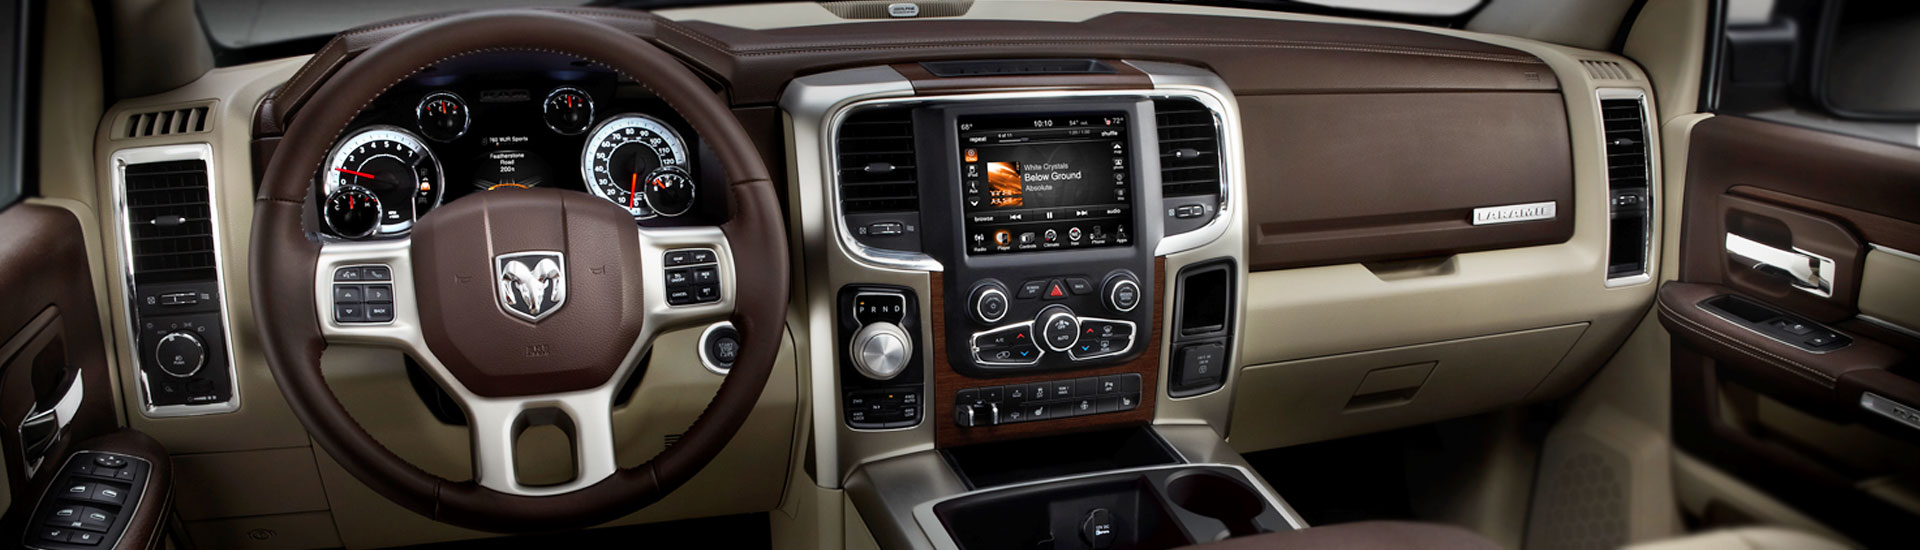 2015 Ram Promaster Custom Dash Kits